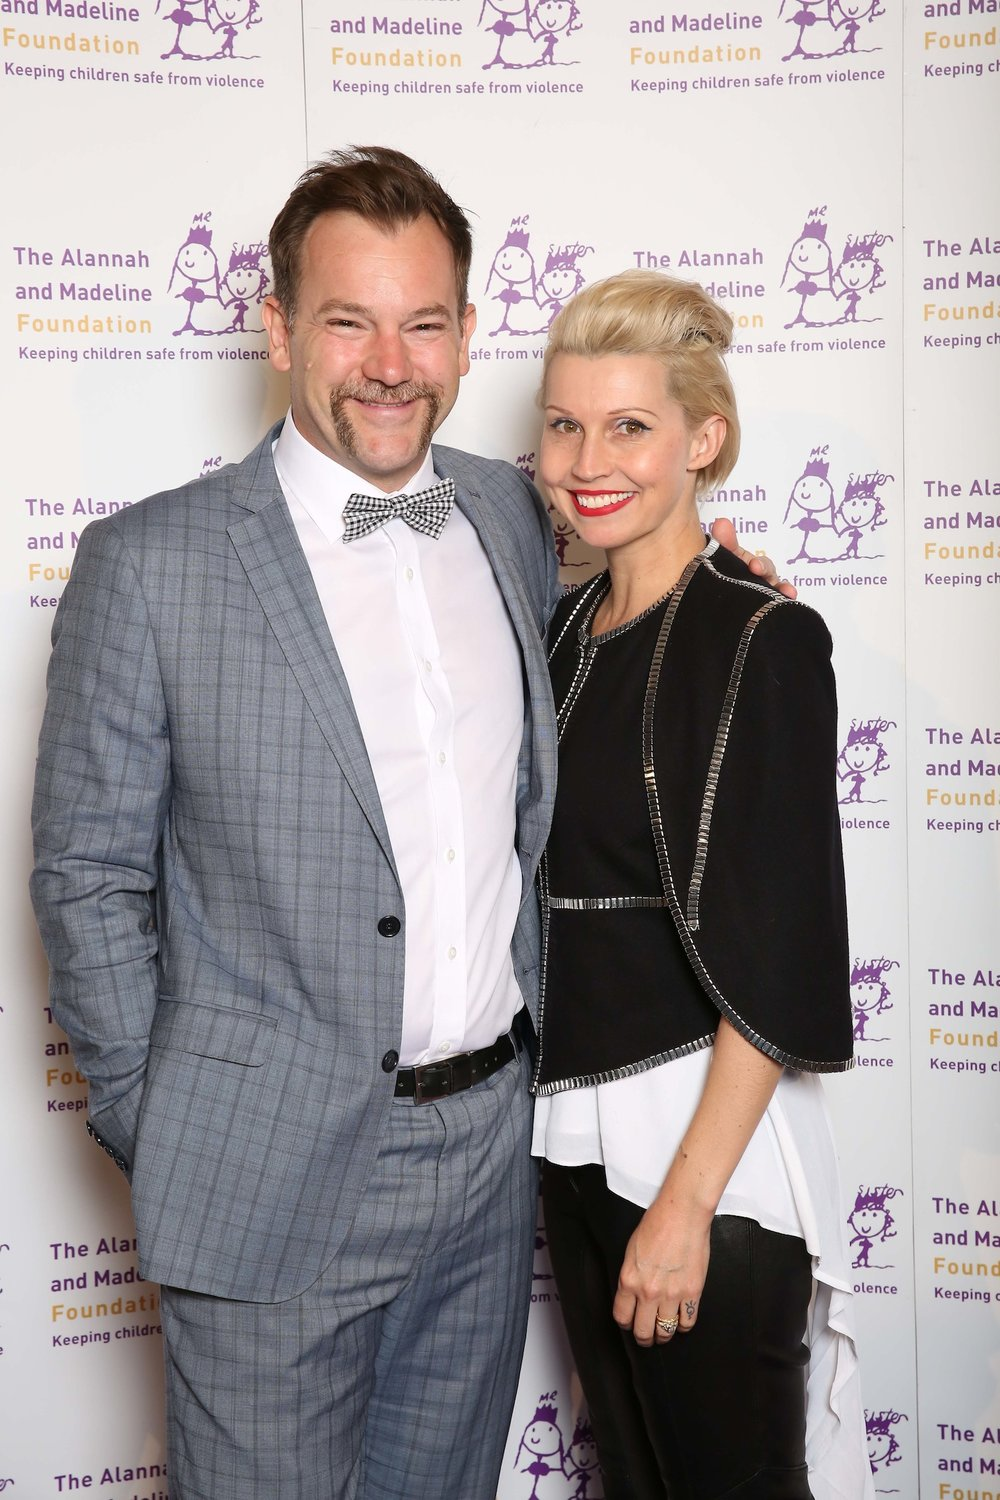 starry-starry-night-gala-ball-2015-anthony-lehmo-lehmann-kelly-kearney.jpg